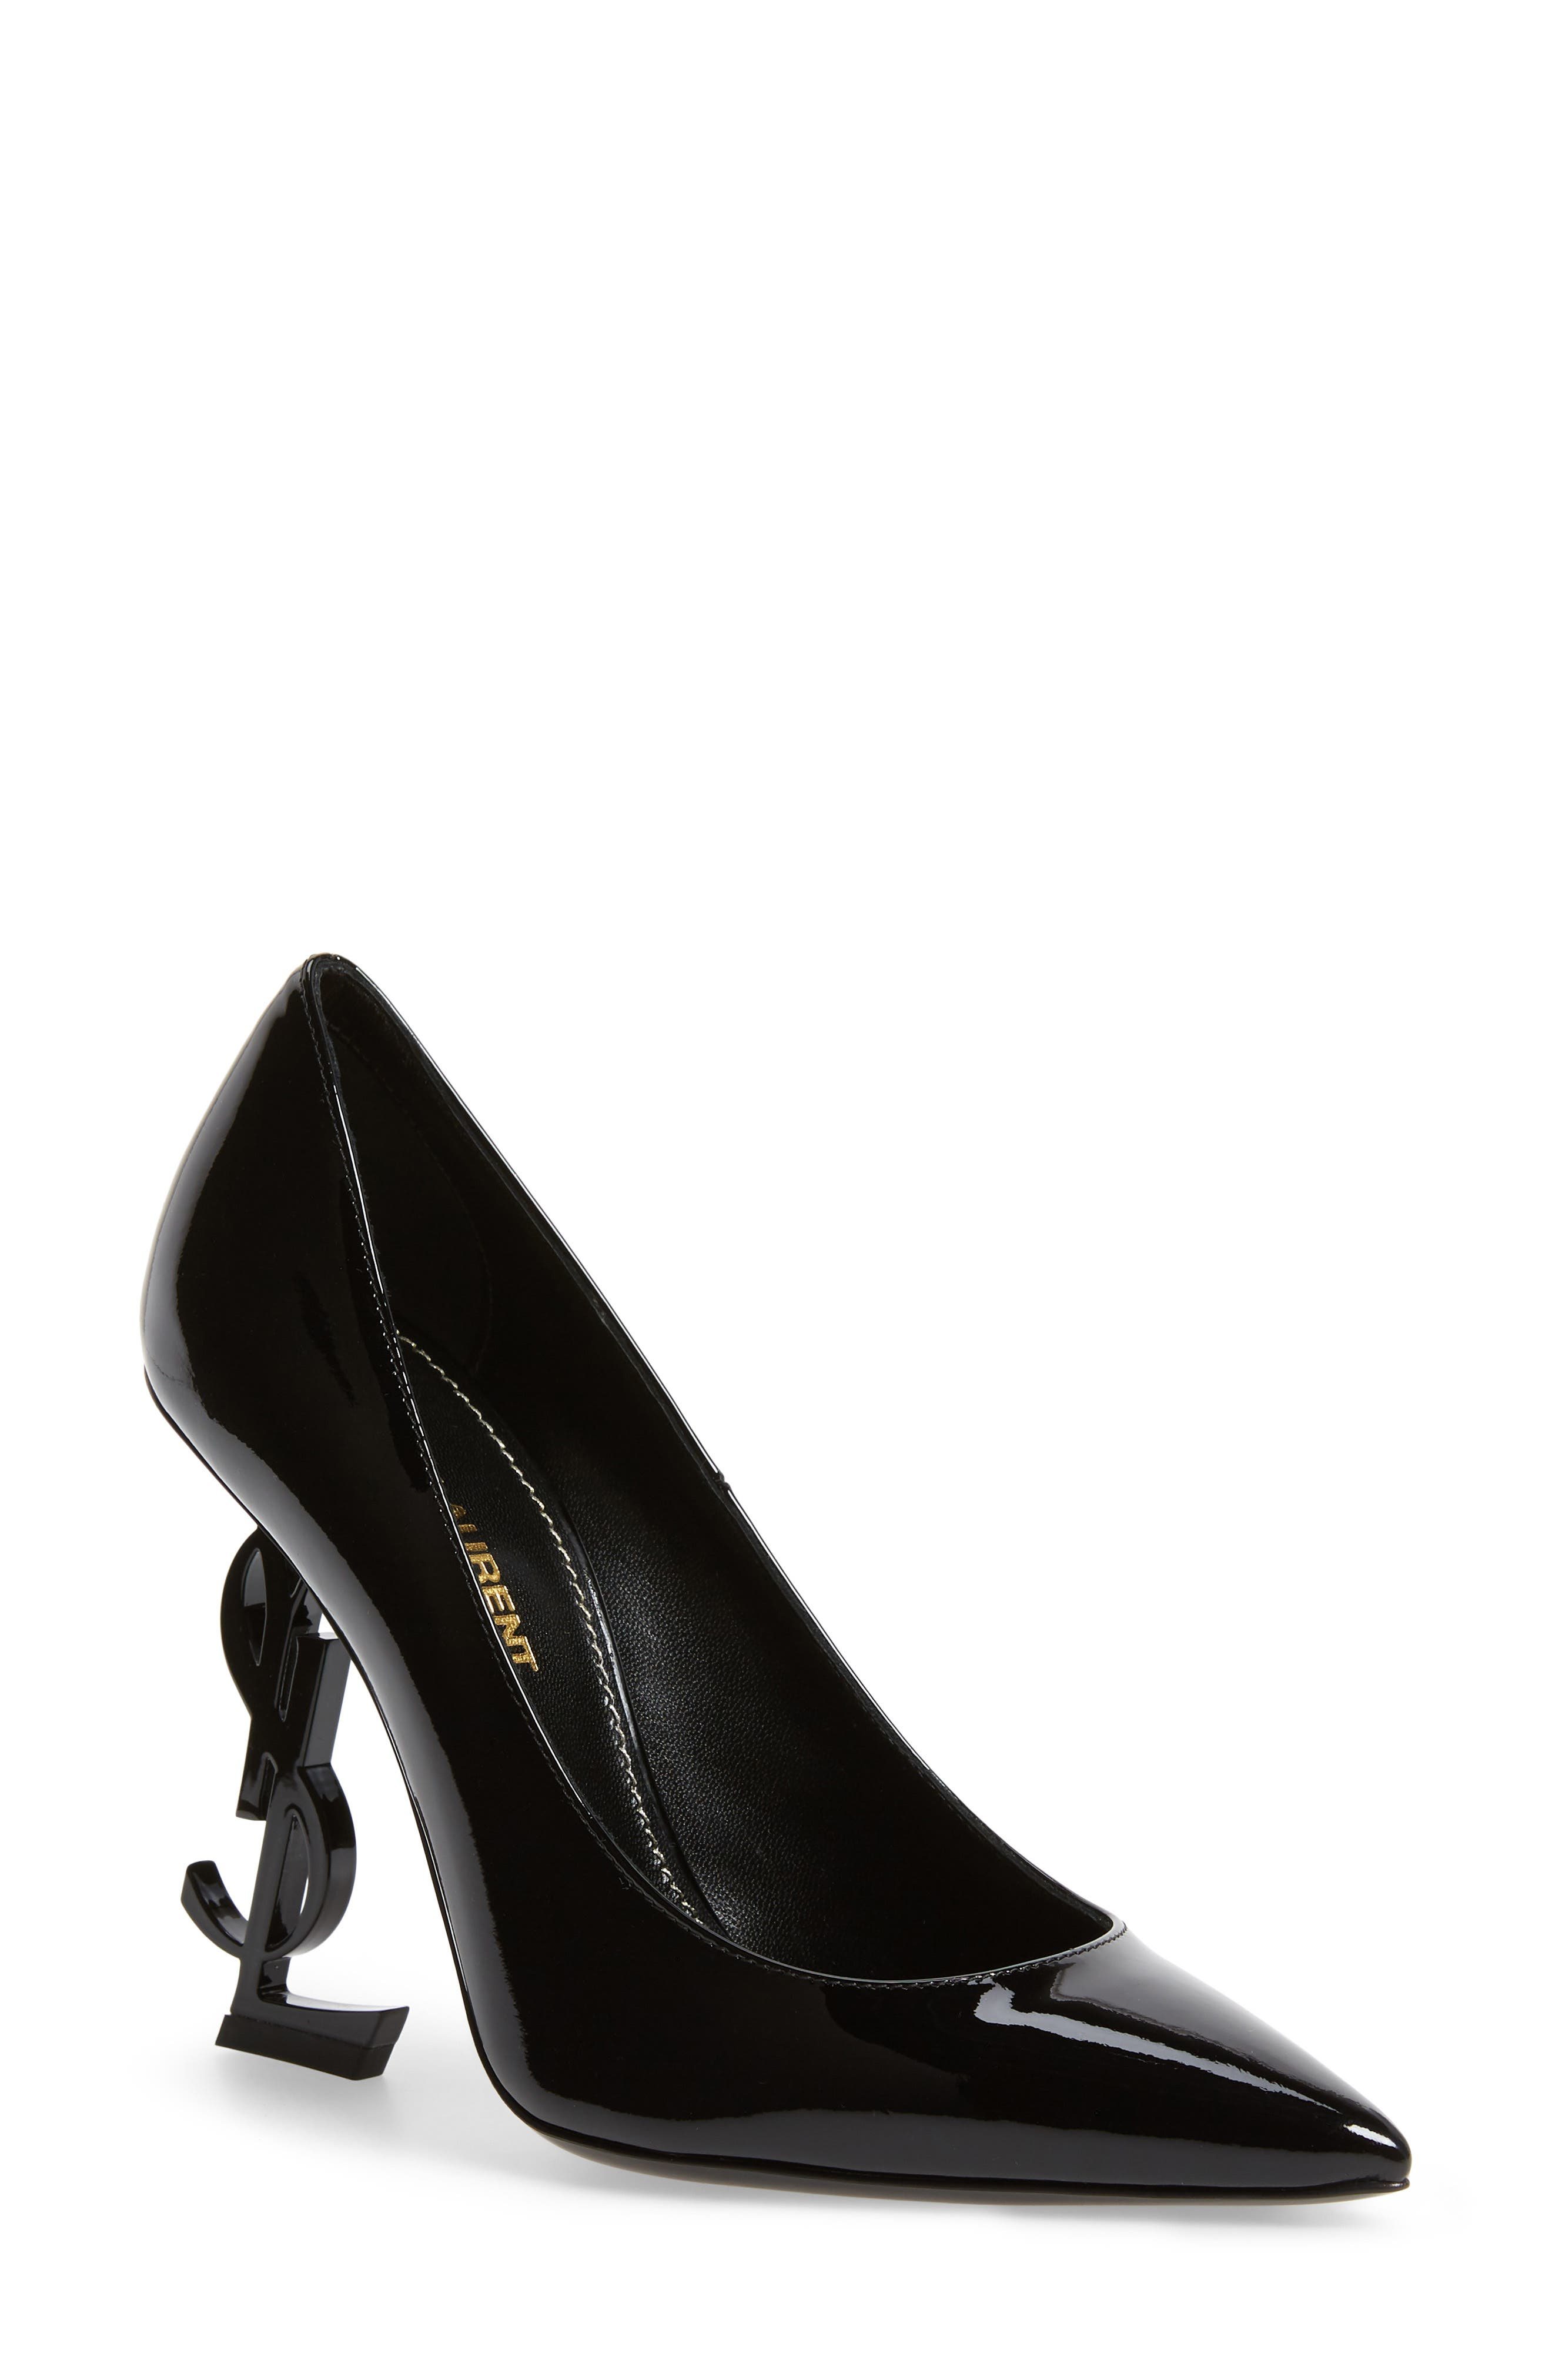 Opyum YSL Pointy Toe Pump,                             Main thumbnail 1, color,                             BLACK/ BLACK